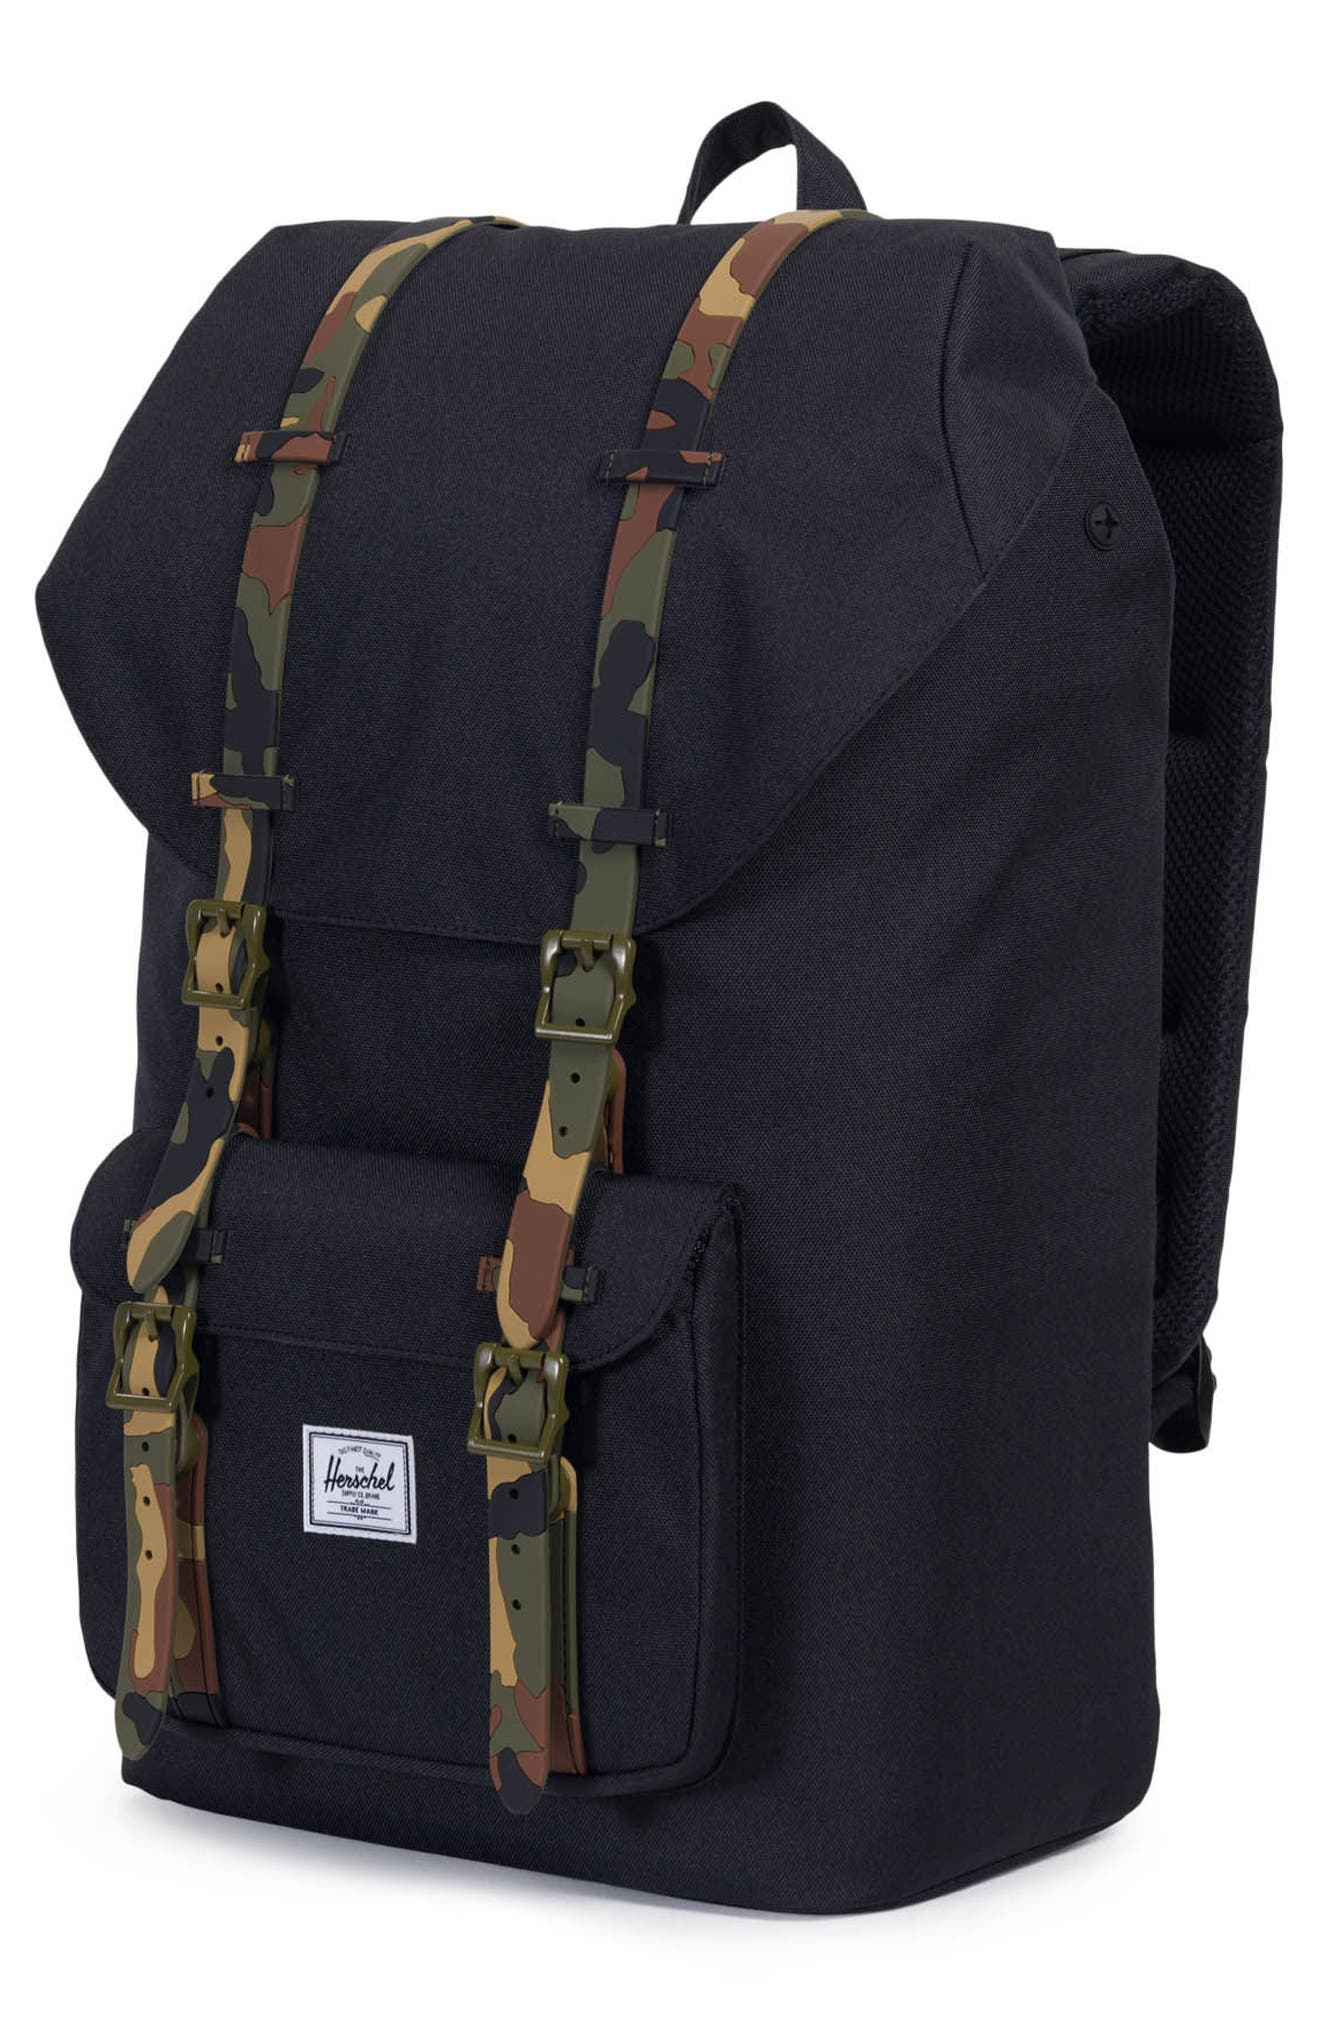 Little America Backpack,                             Alternate thumbnail 4, color,                             Black/ Woodland Camo Rubber